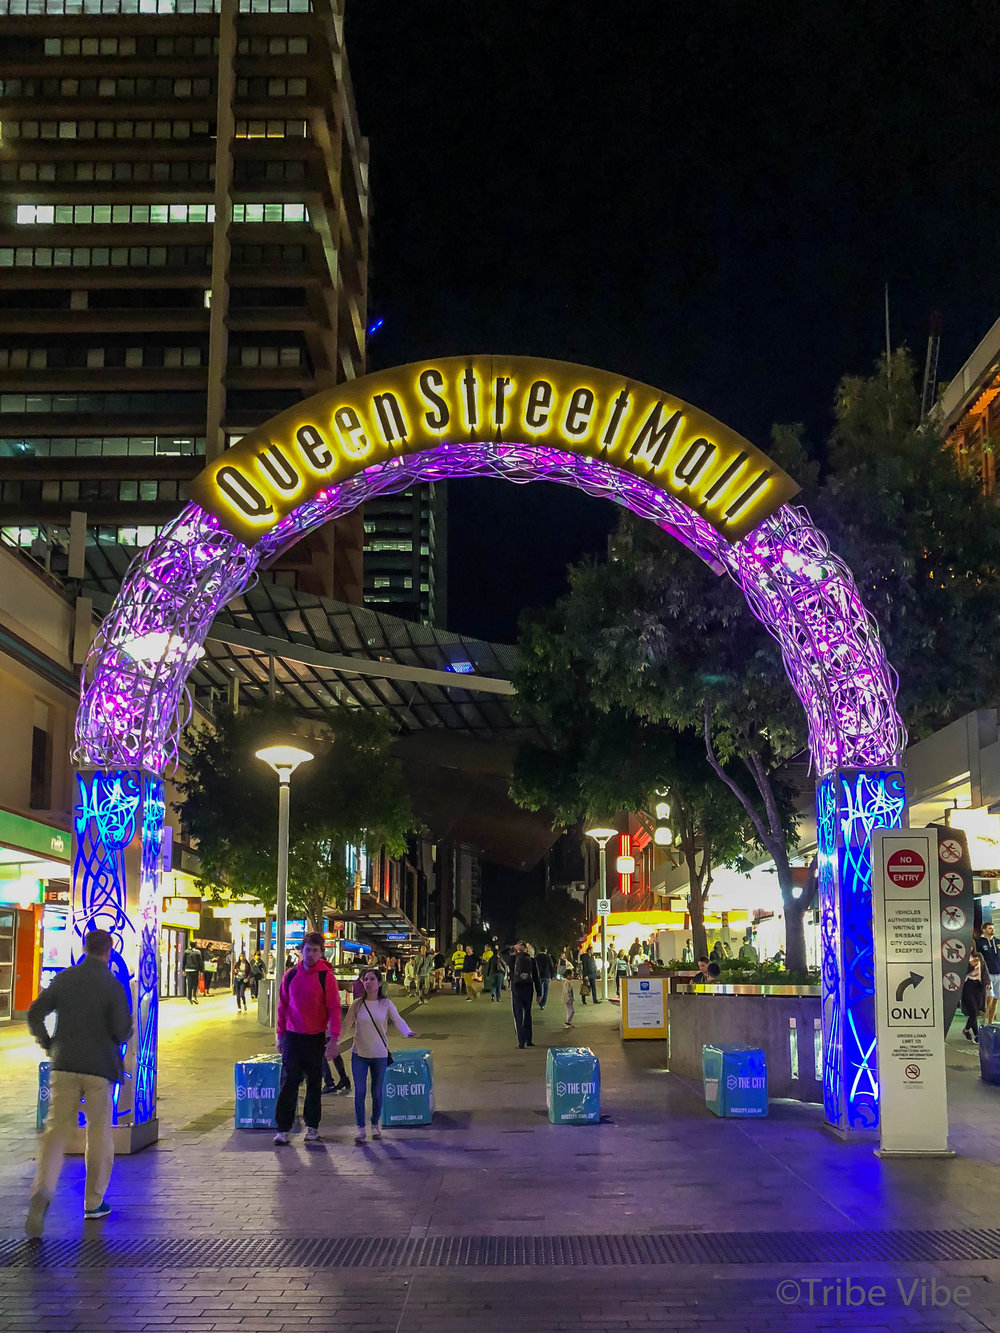 Queen Street Mall in Brisbane, Australia.